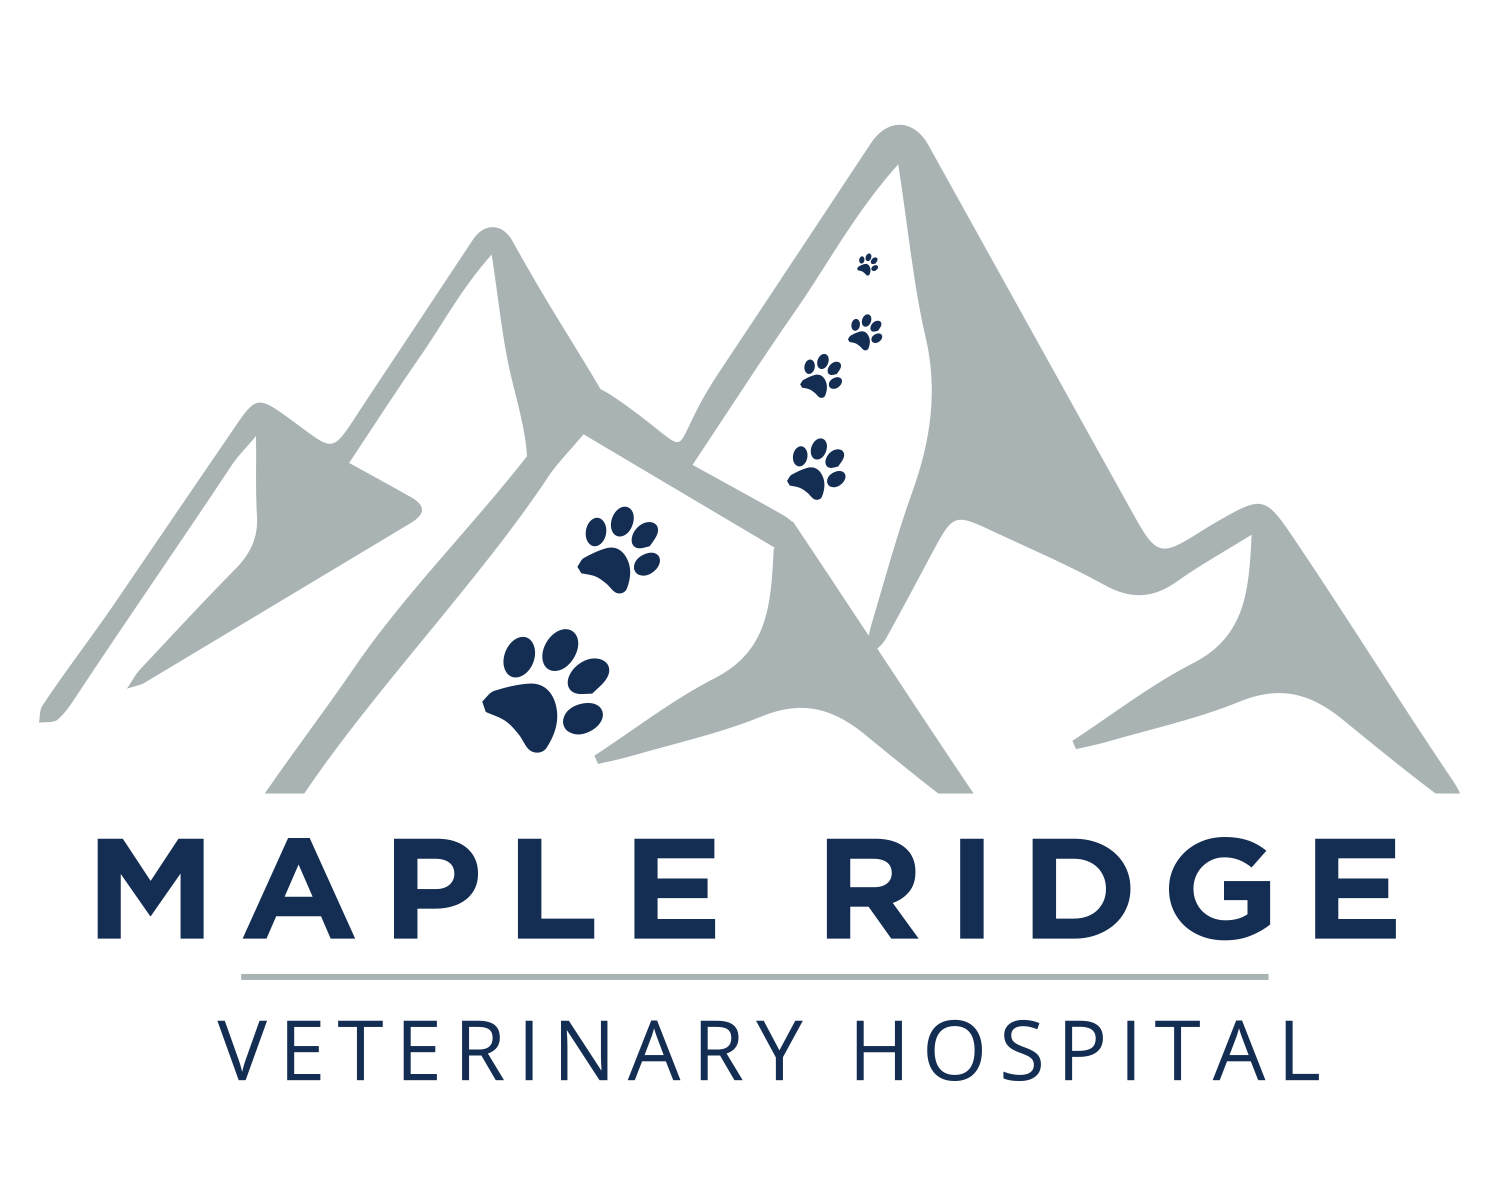 Maple Ridge Veterinary Hospital